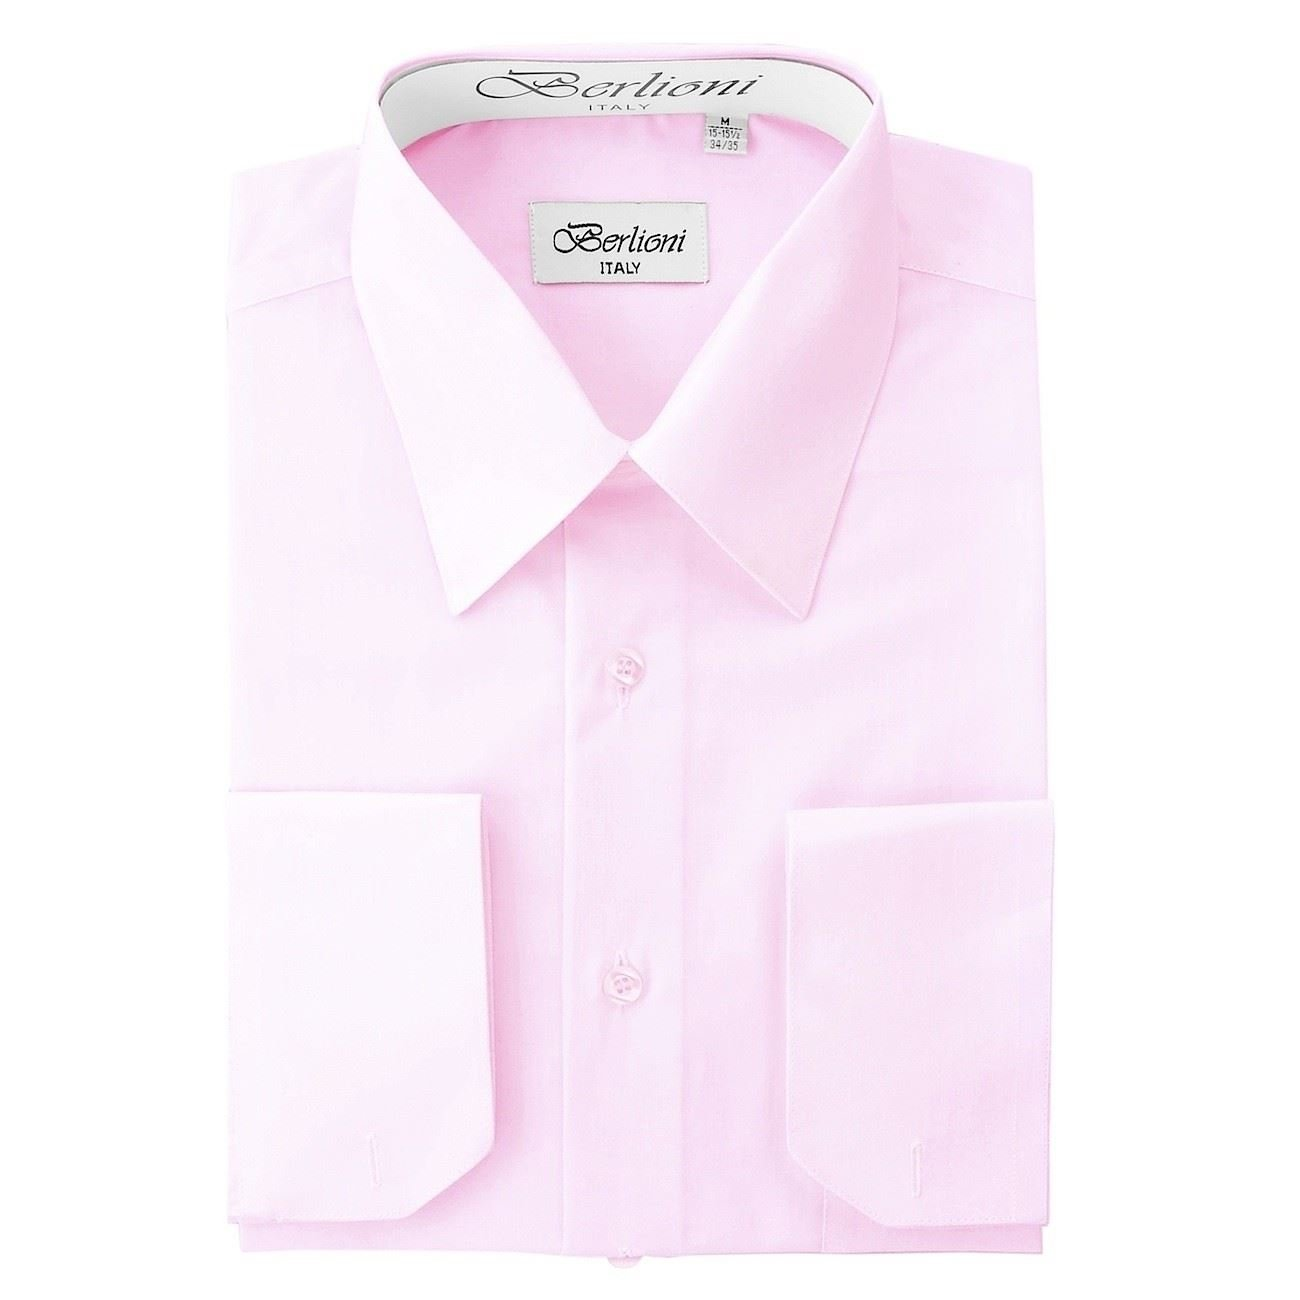 Berlioni Italy Mens Luxe Dress Shirt French Convertible Cuff Button Down Pink